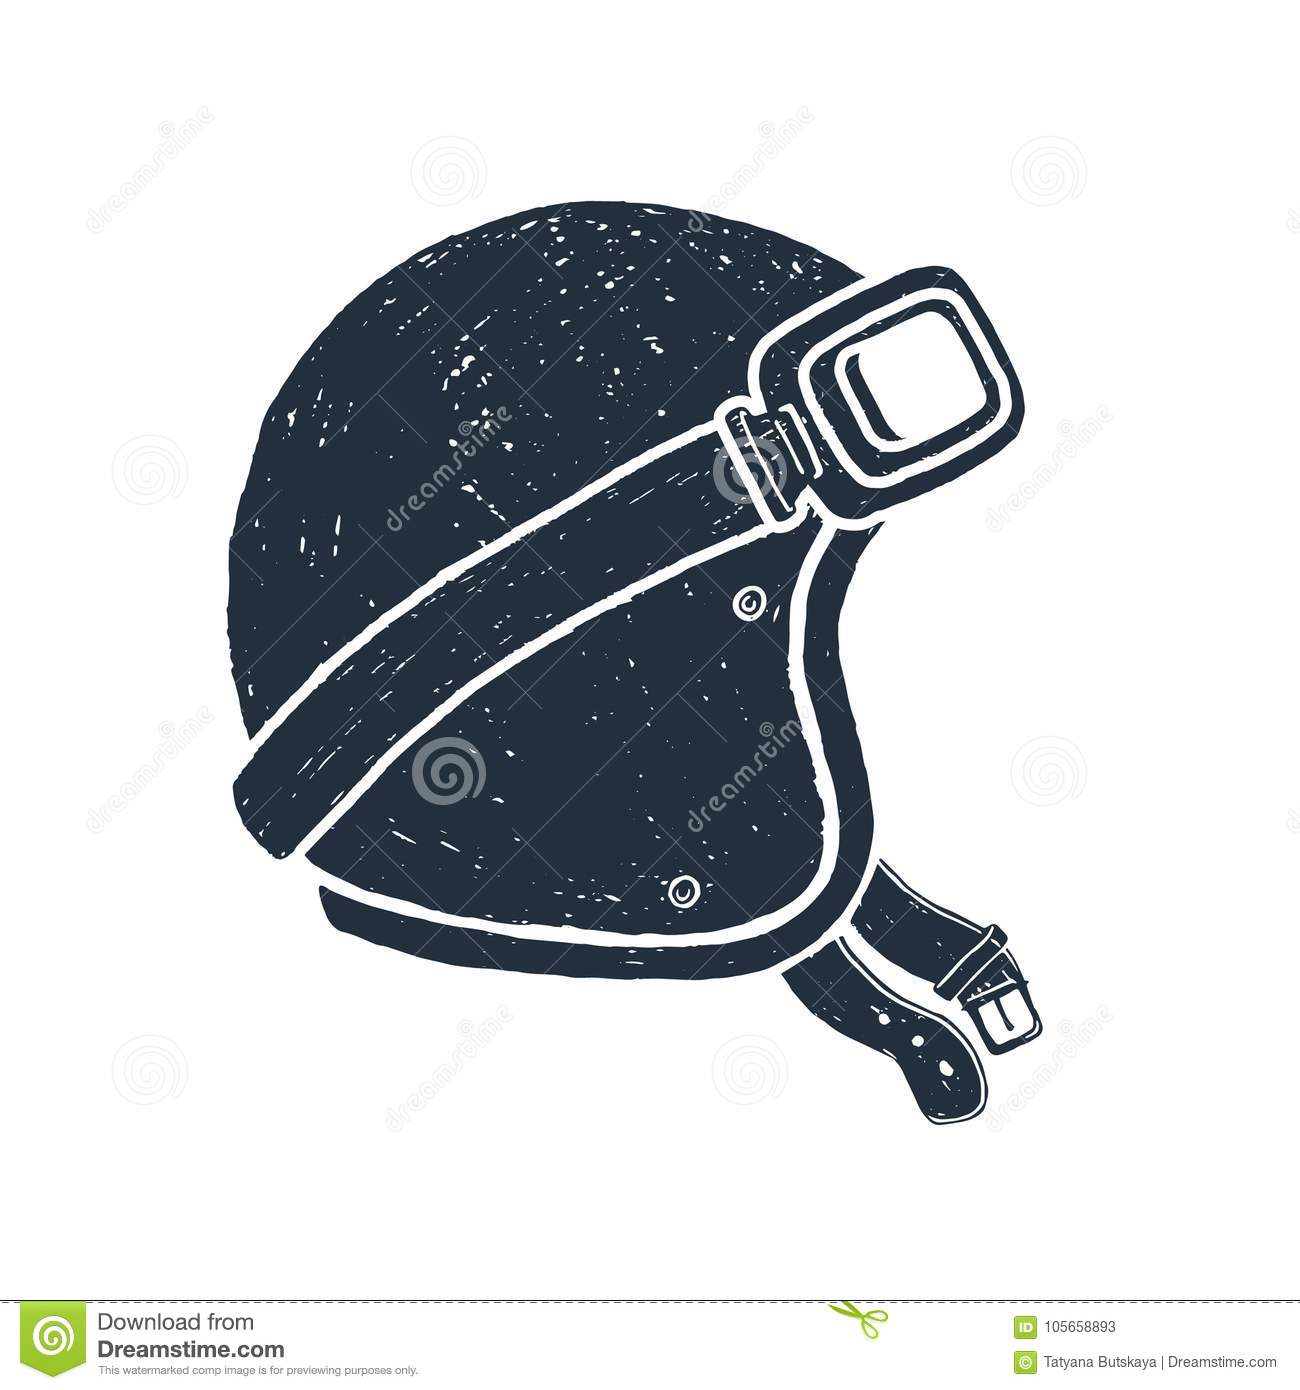 Hand drawn racing helmet vector illustration.